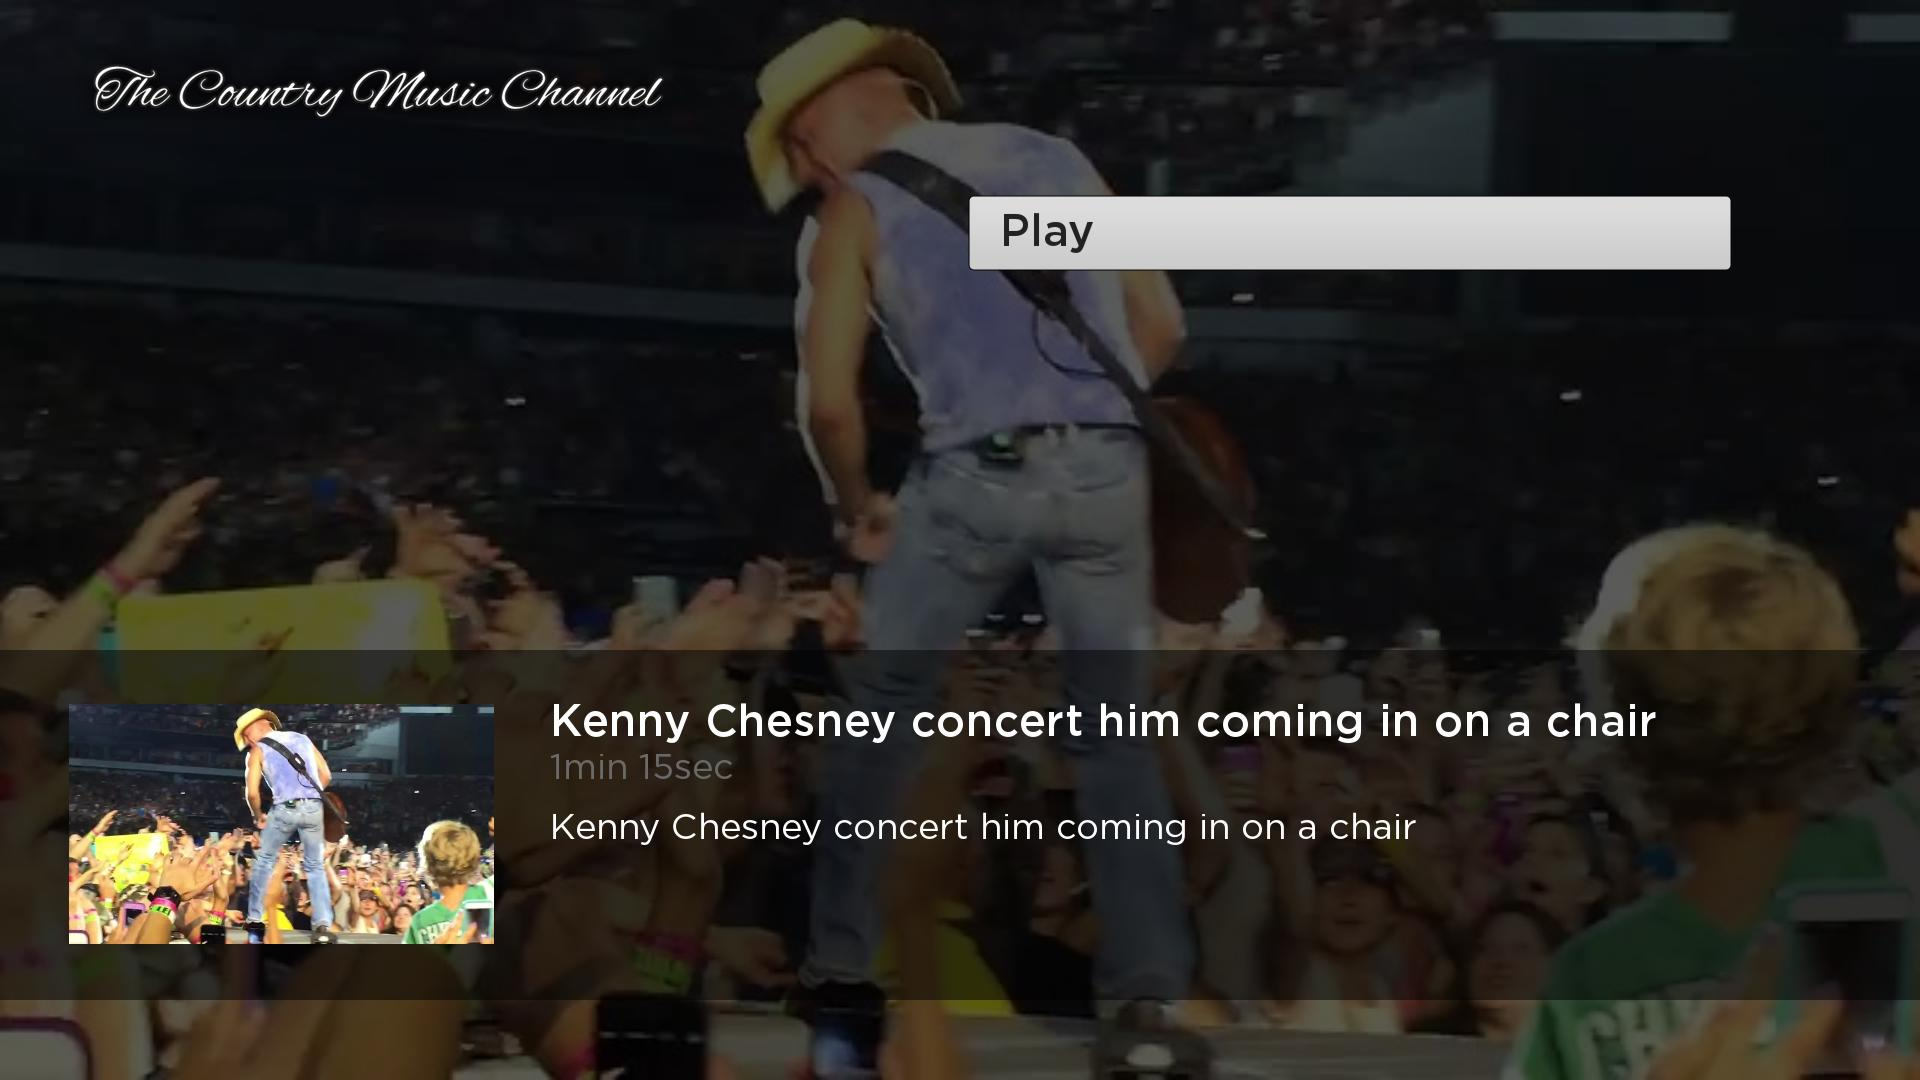 The Country Music Channel Screenshot 003